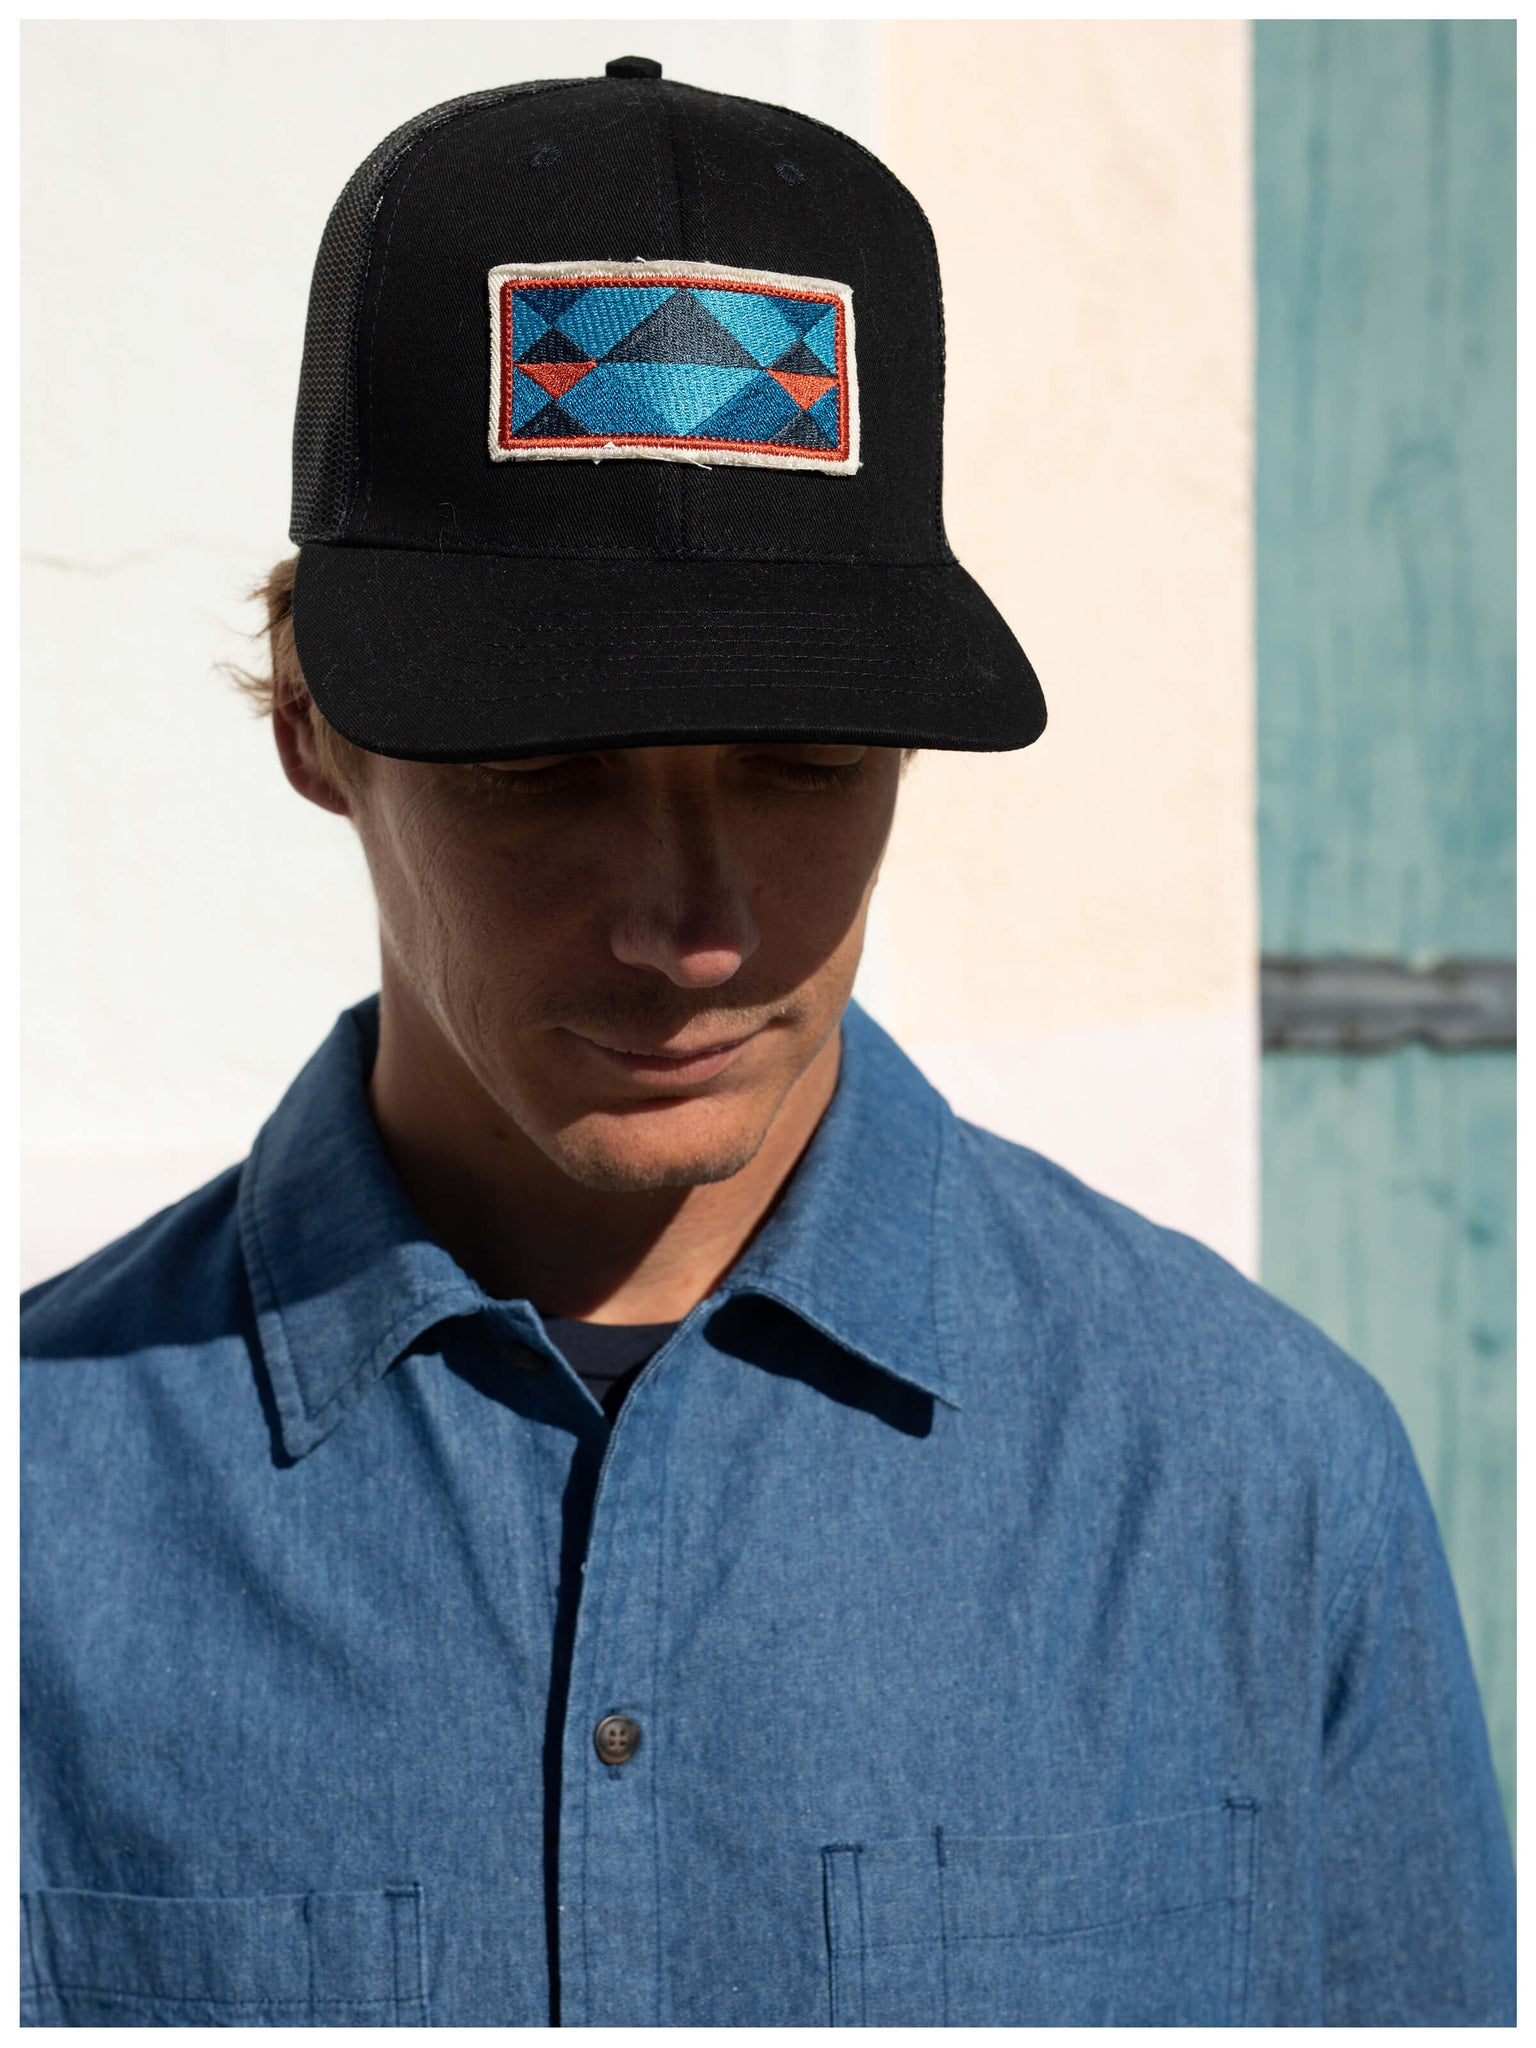 Moroc Patch Trucker Hat